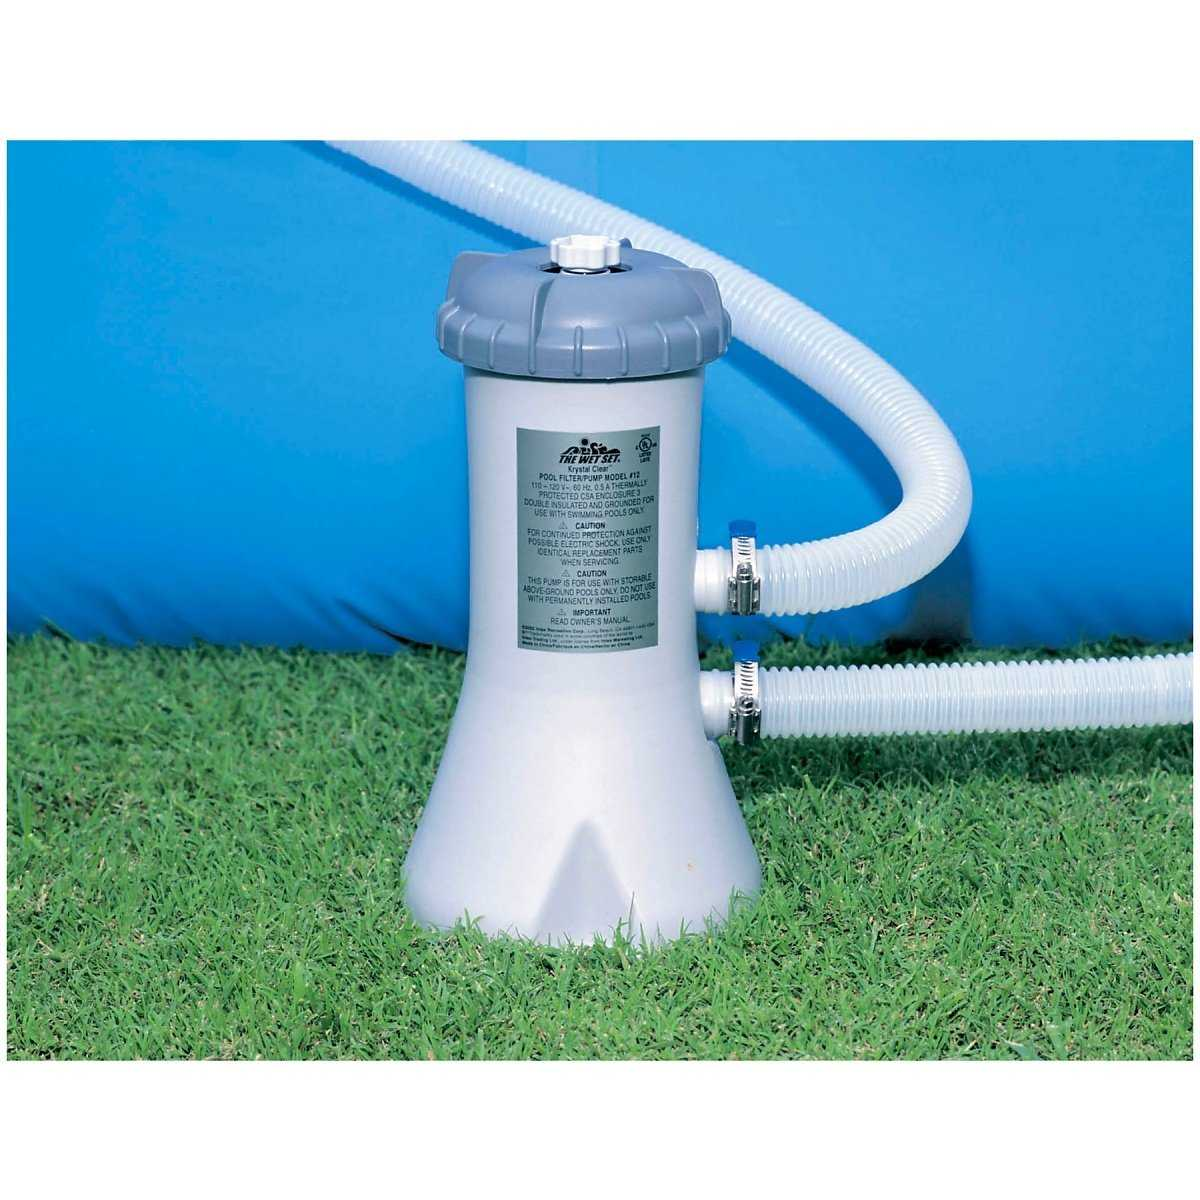 Pool Pumpe Filter Reinigen 15 Great Cheap Pool Filters And Pumps Make Your Wallet Happy